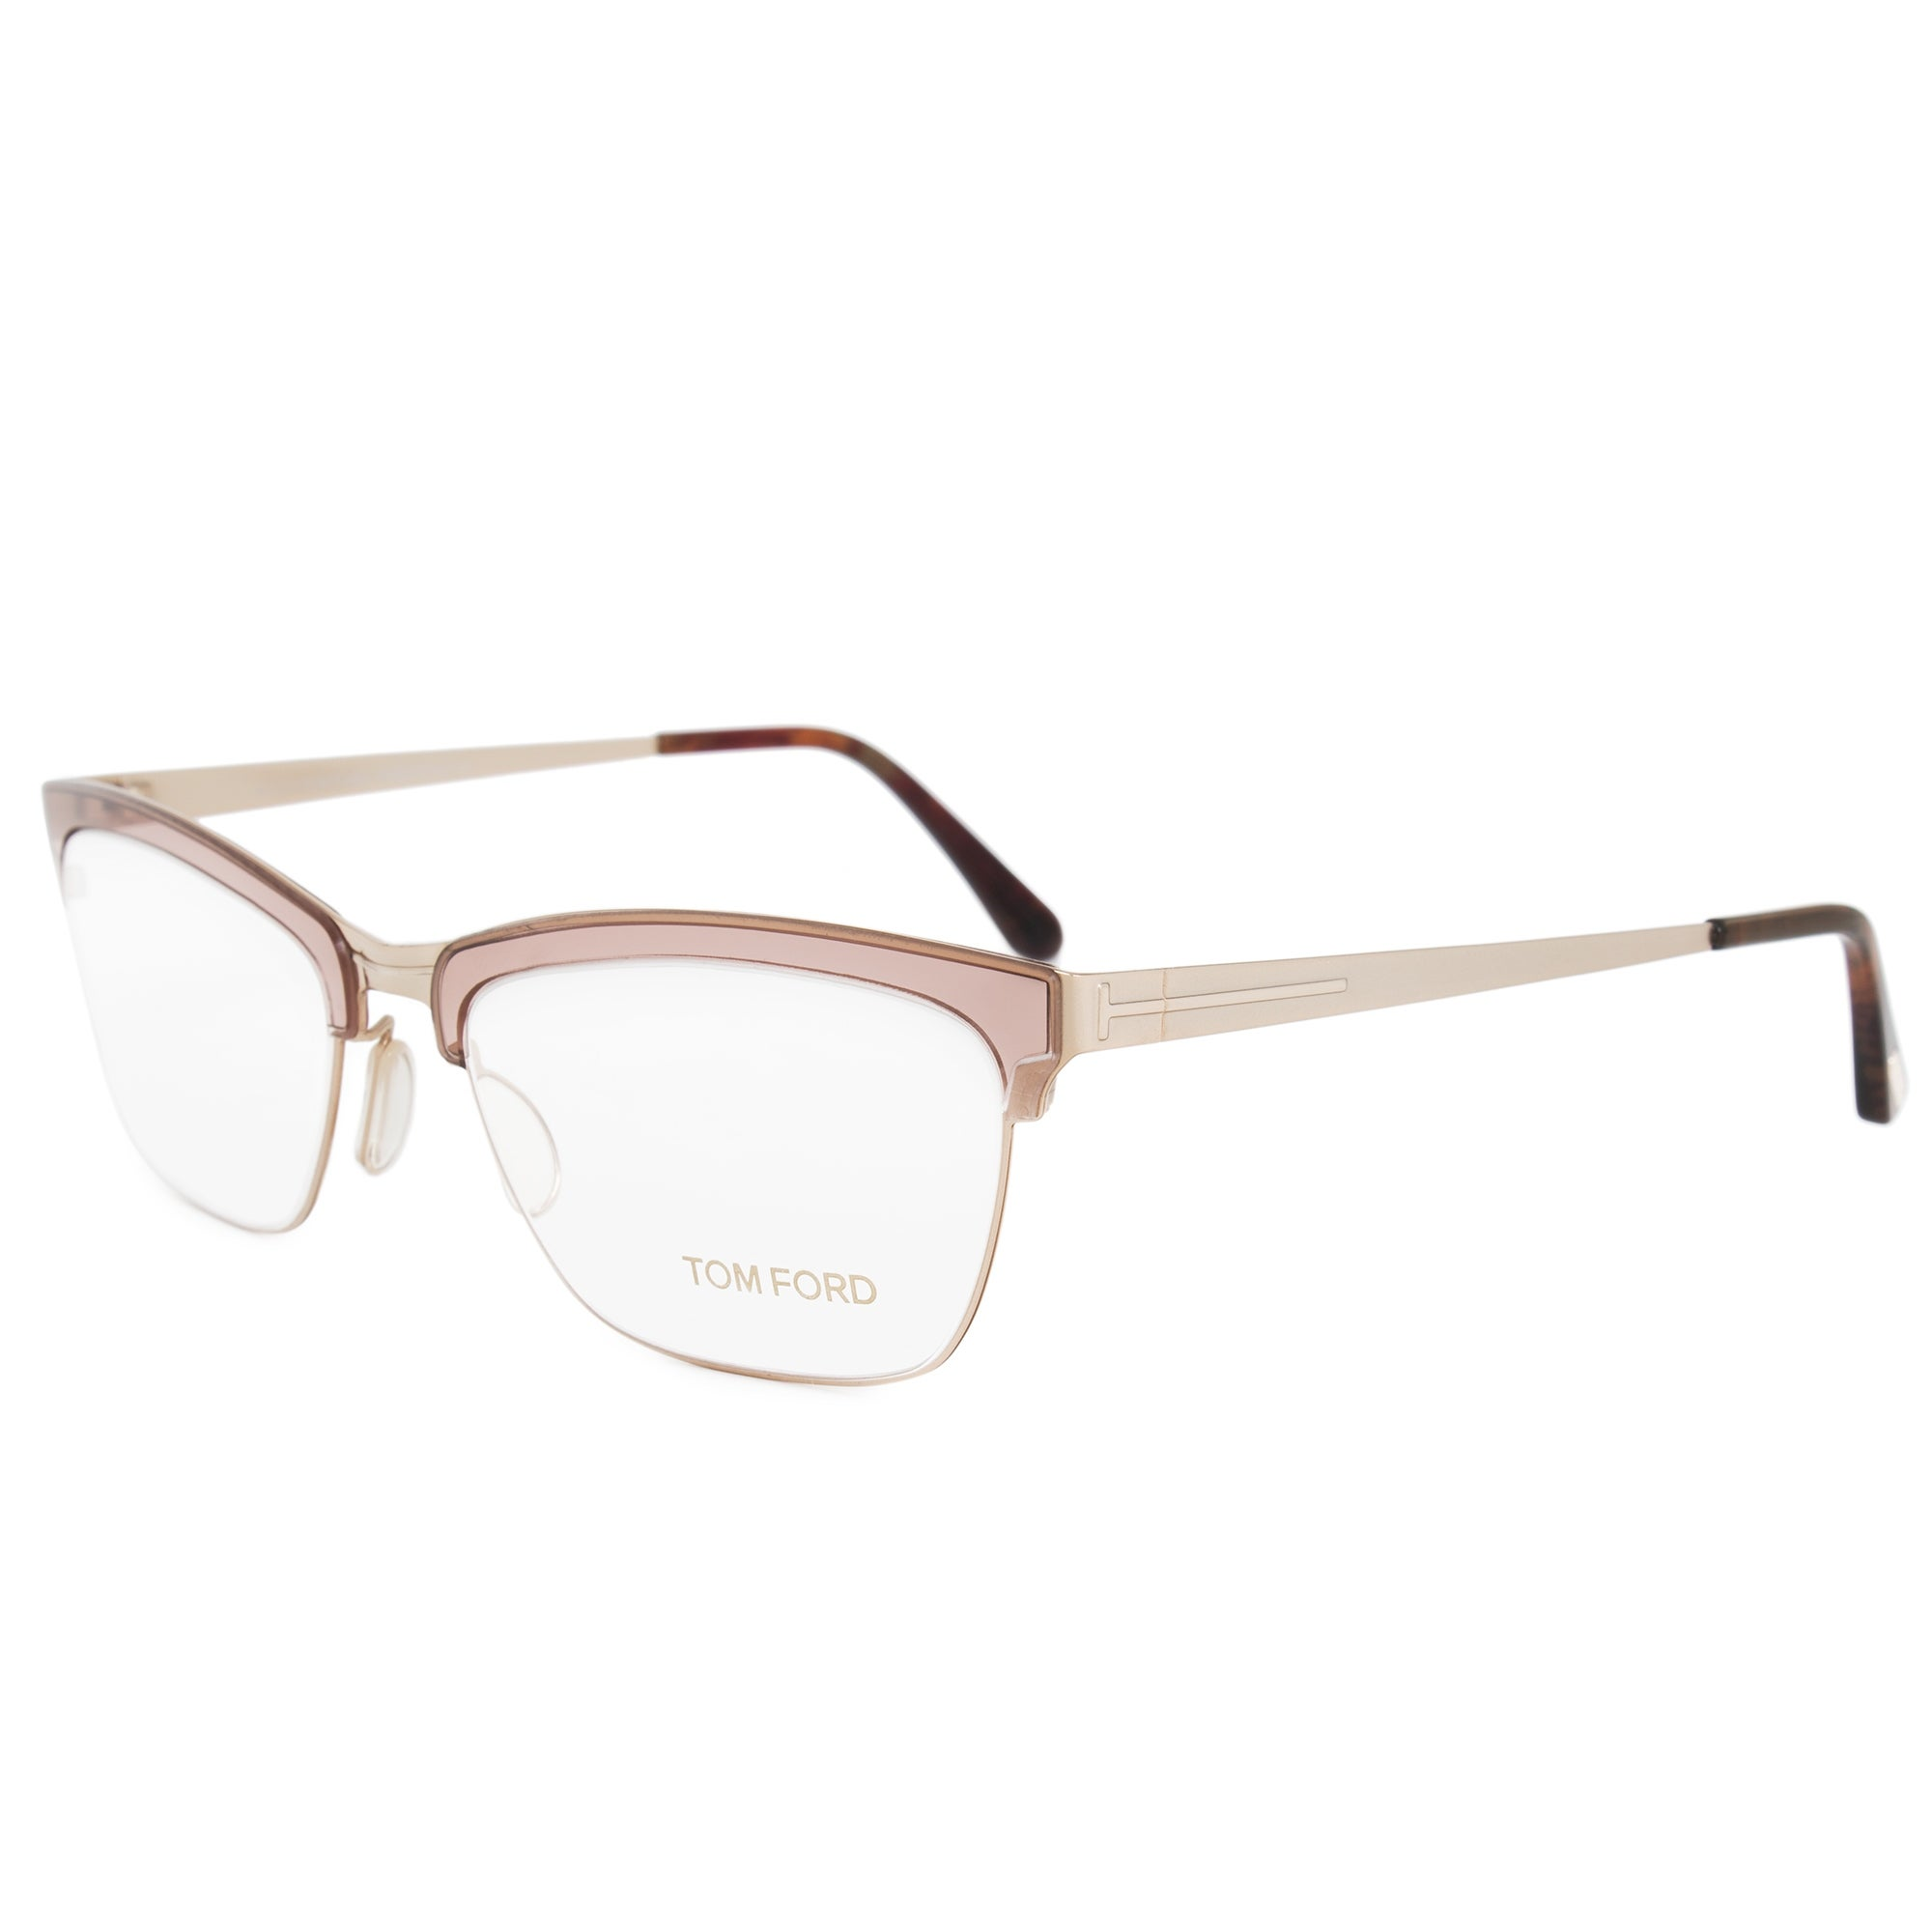 a4993d1404a Shop Tom Ford FT5392 050 54 Cat Eye - Free Shipping Today - Overstock -  21408972